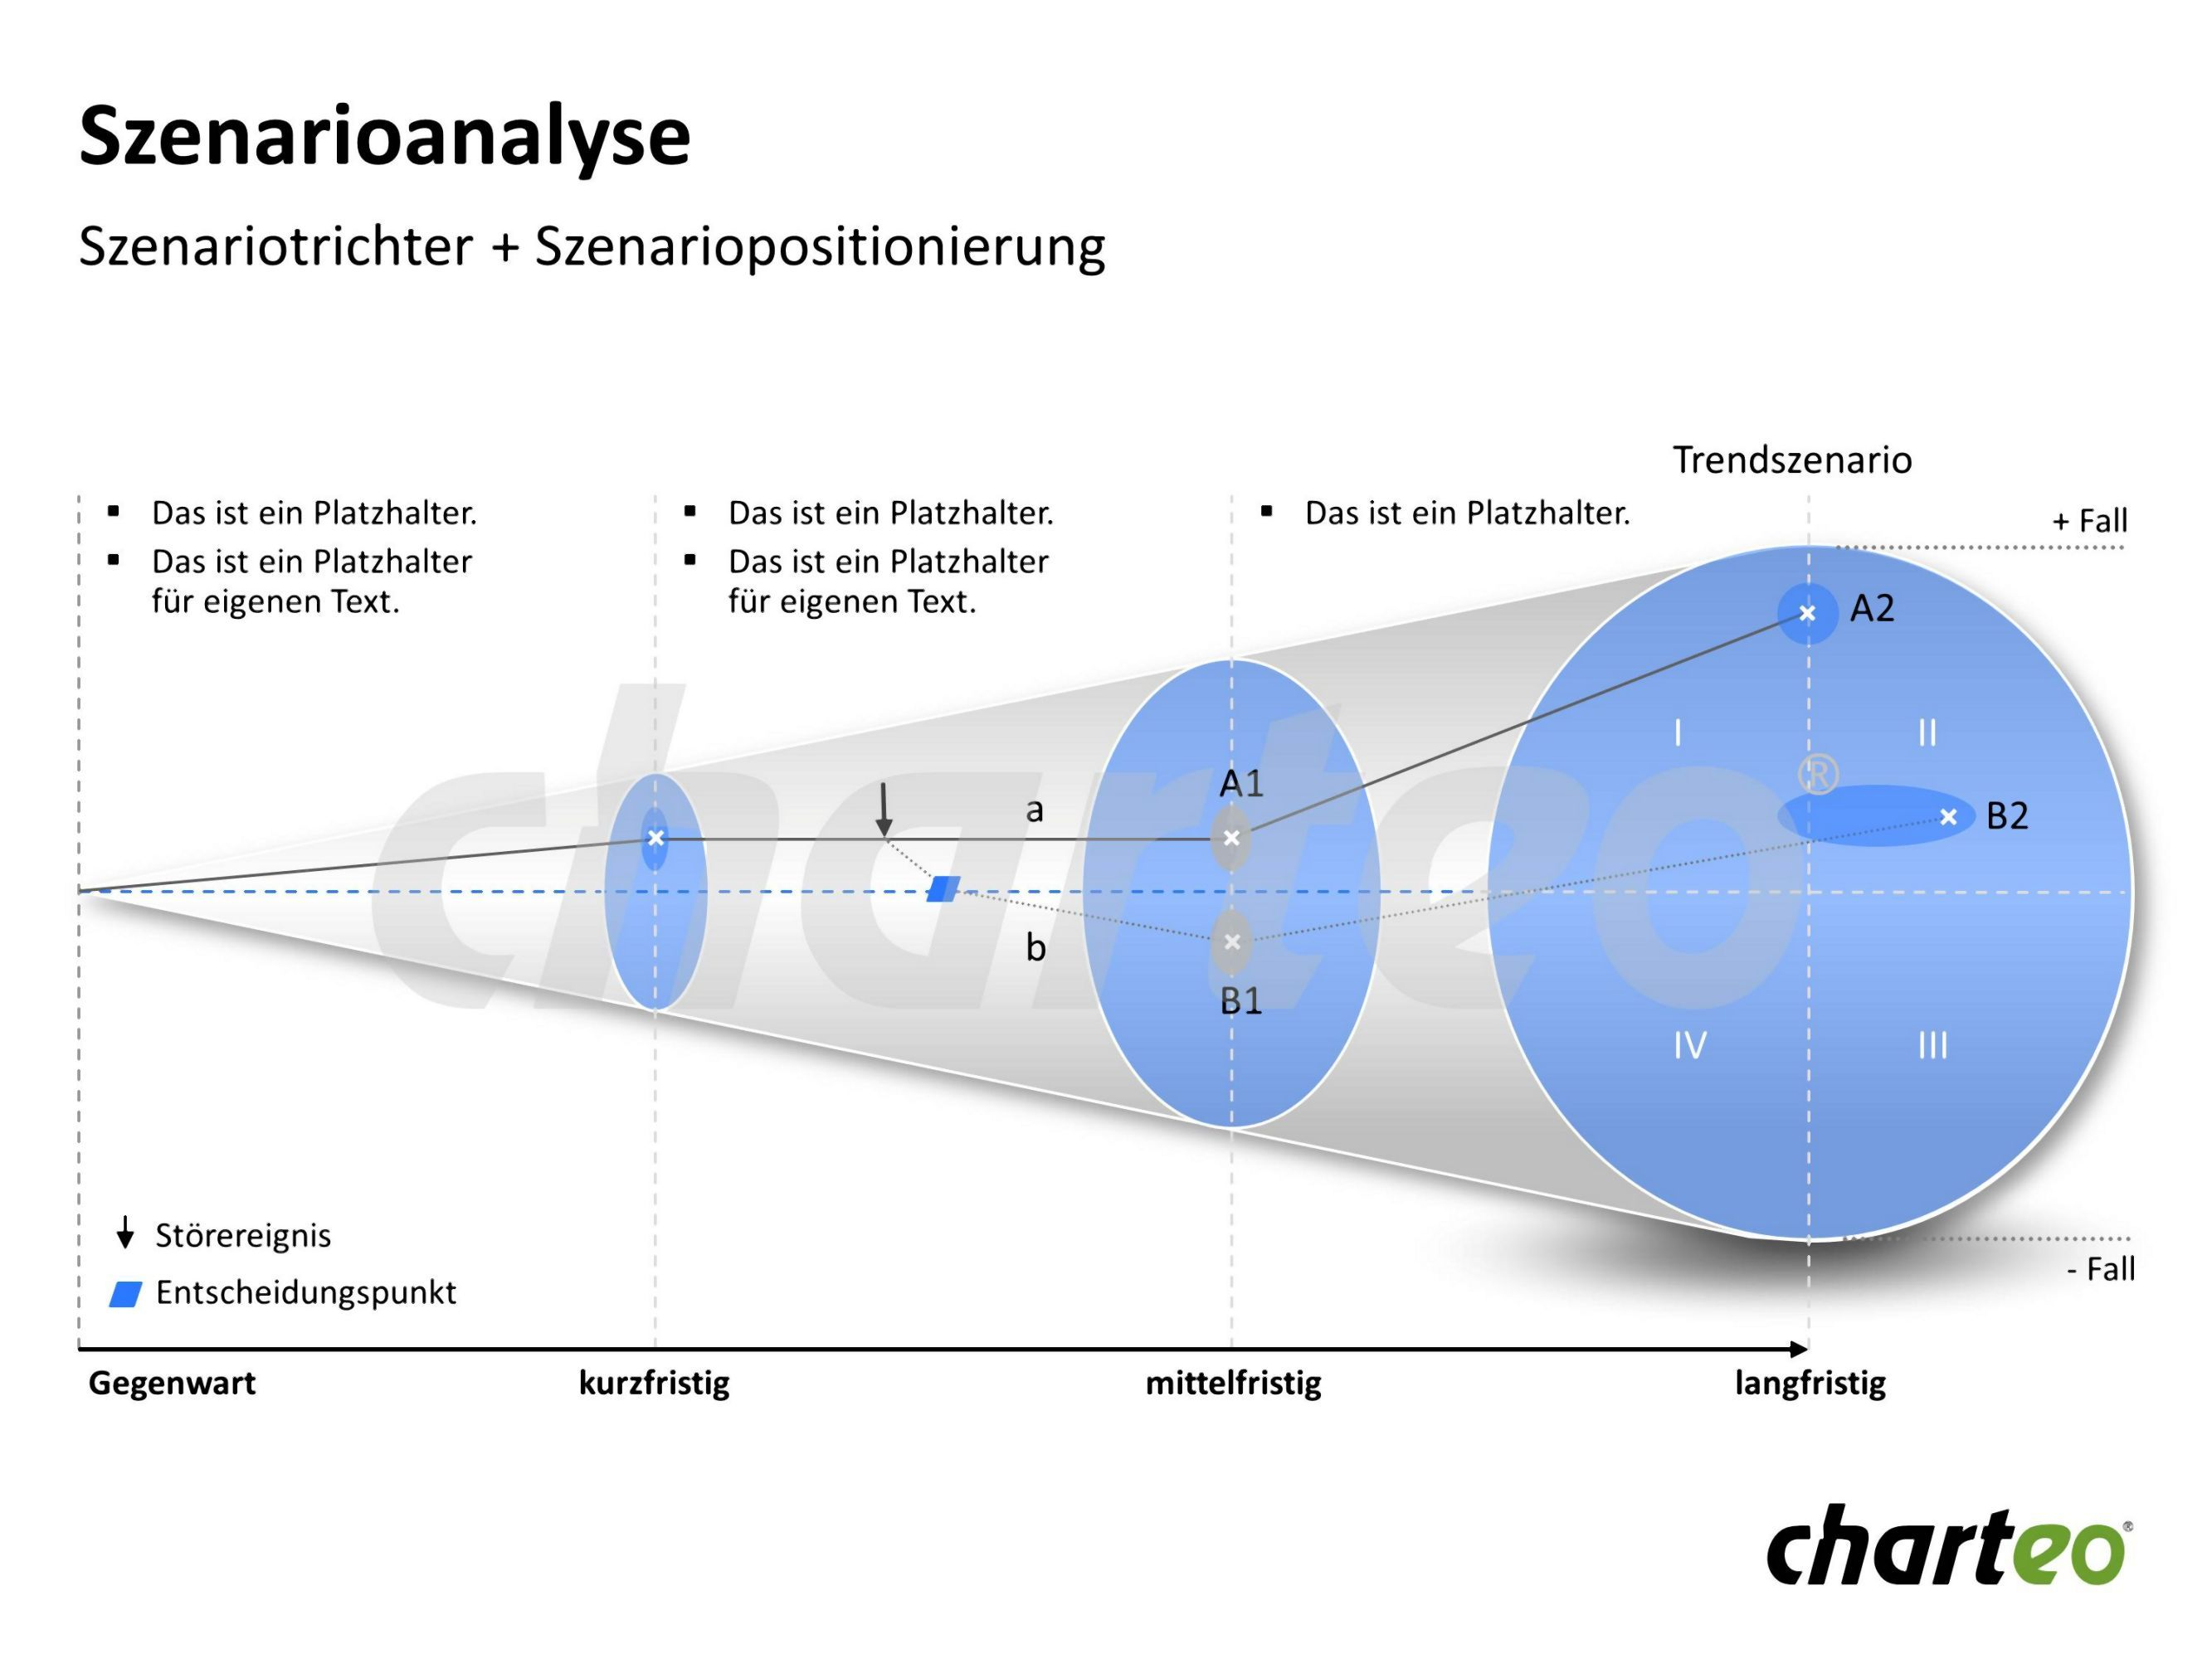 Have You Already Tried To Visualize Your Scenario Analysis By